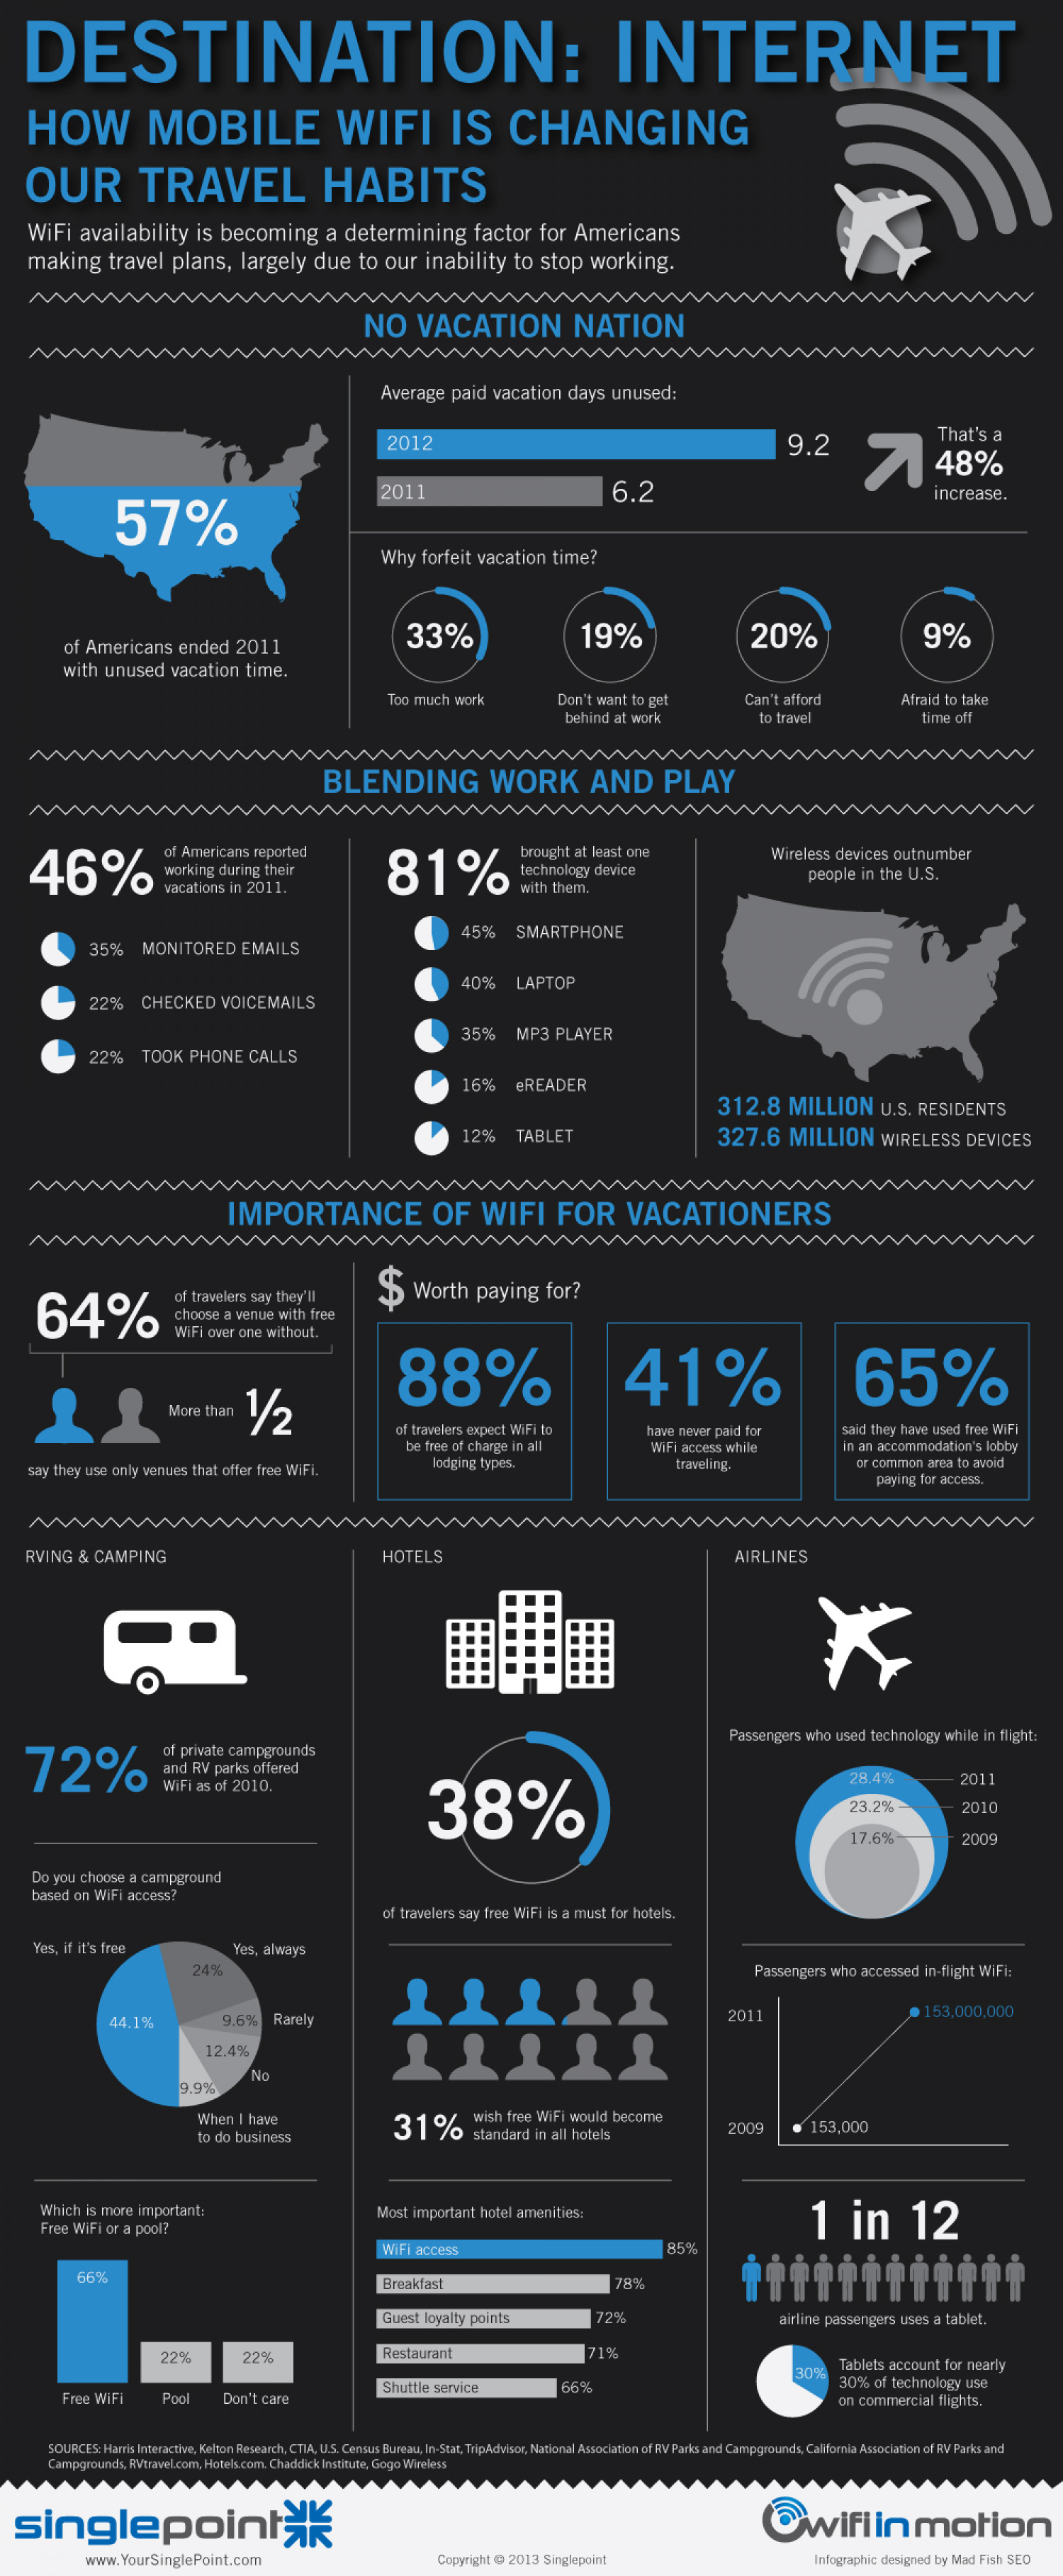 Destination Internet: How Mobile WiFi is Changing Our Travel Habits Infographic